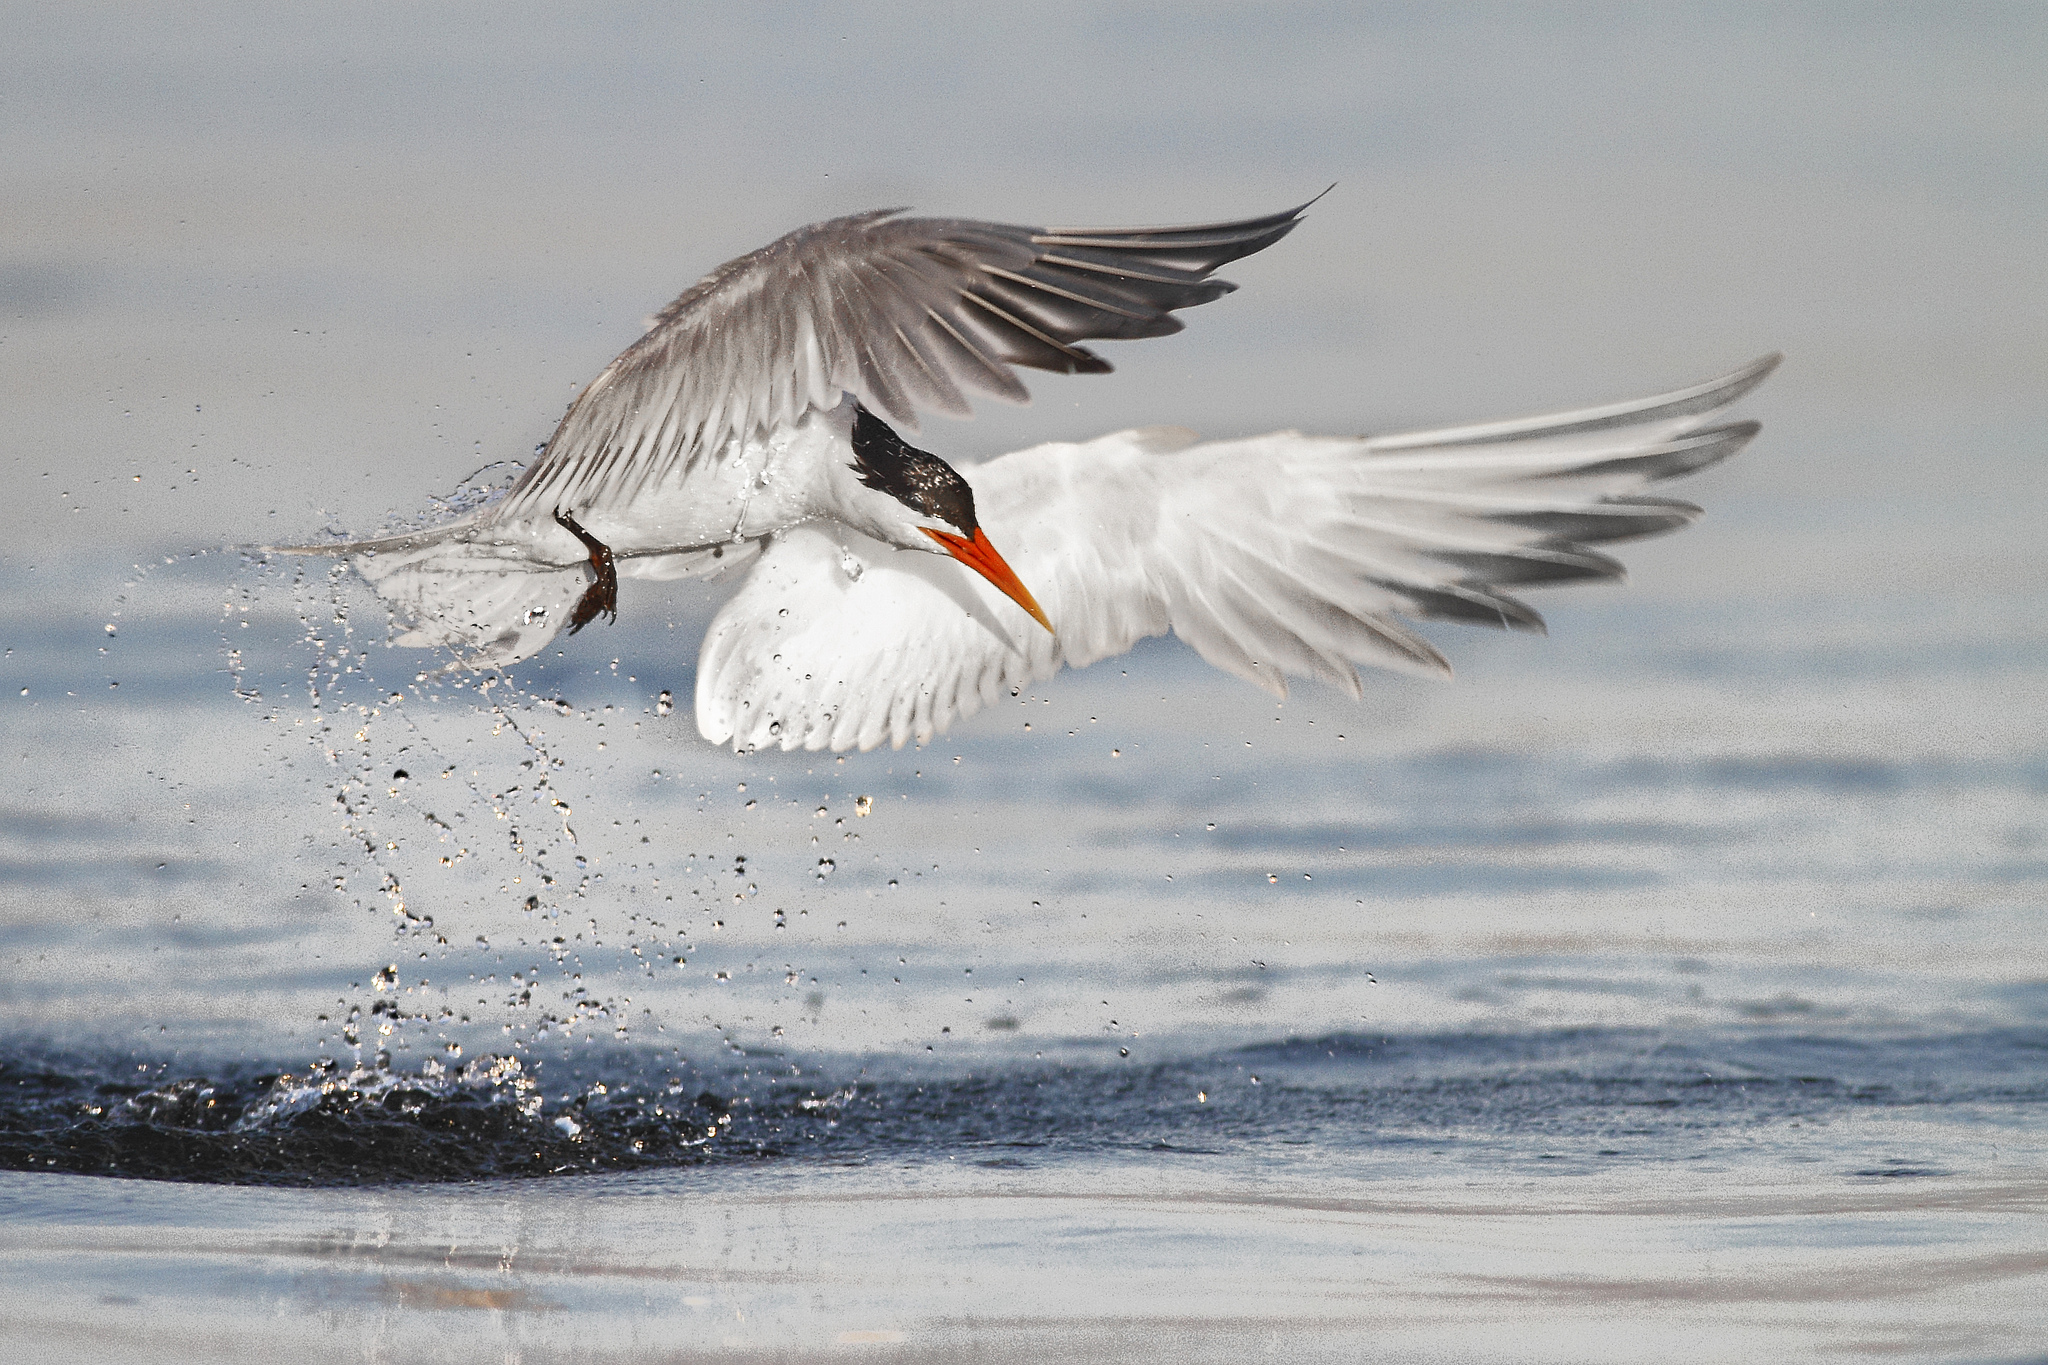 Arctic Tern Computer Wallpapers, Desktop Backgrounds